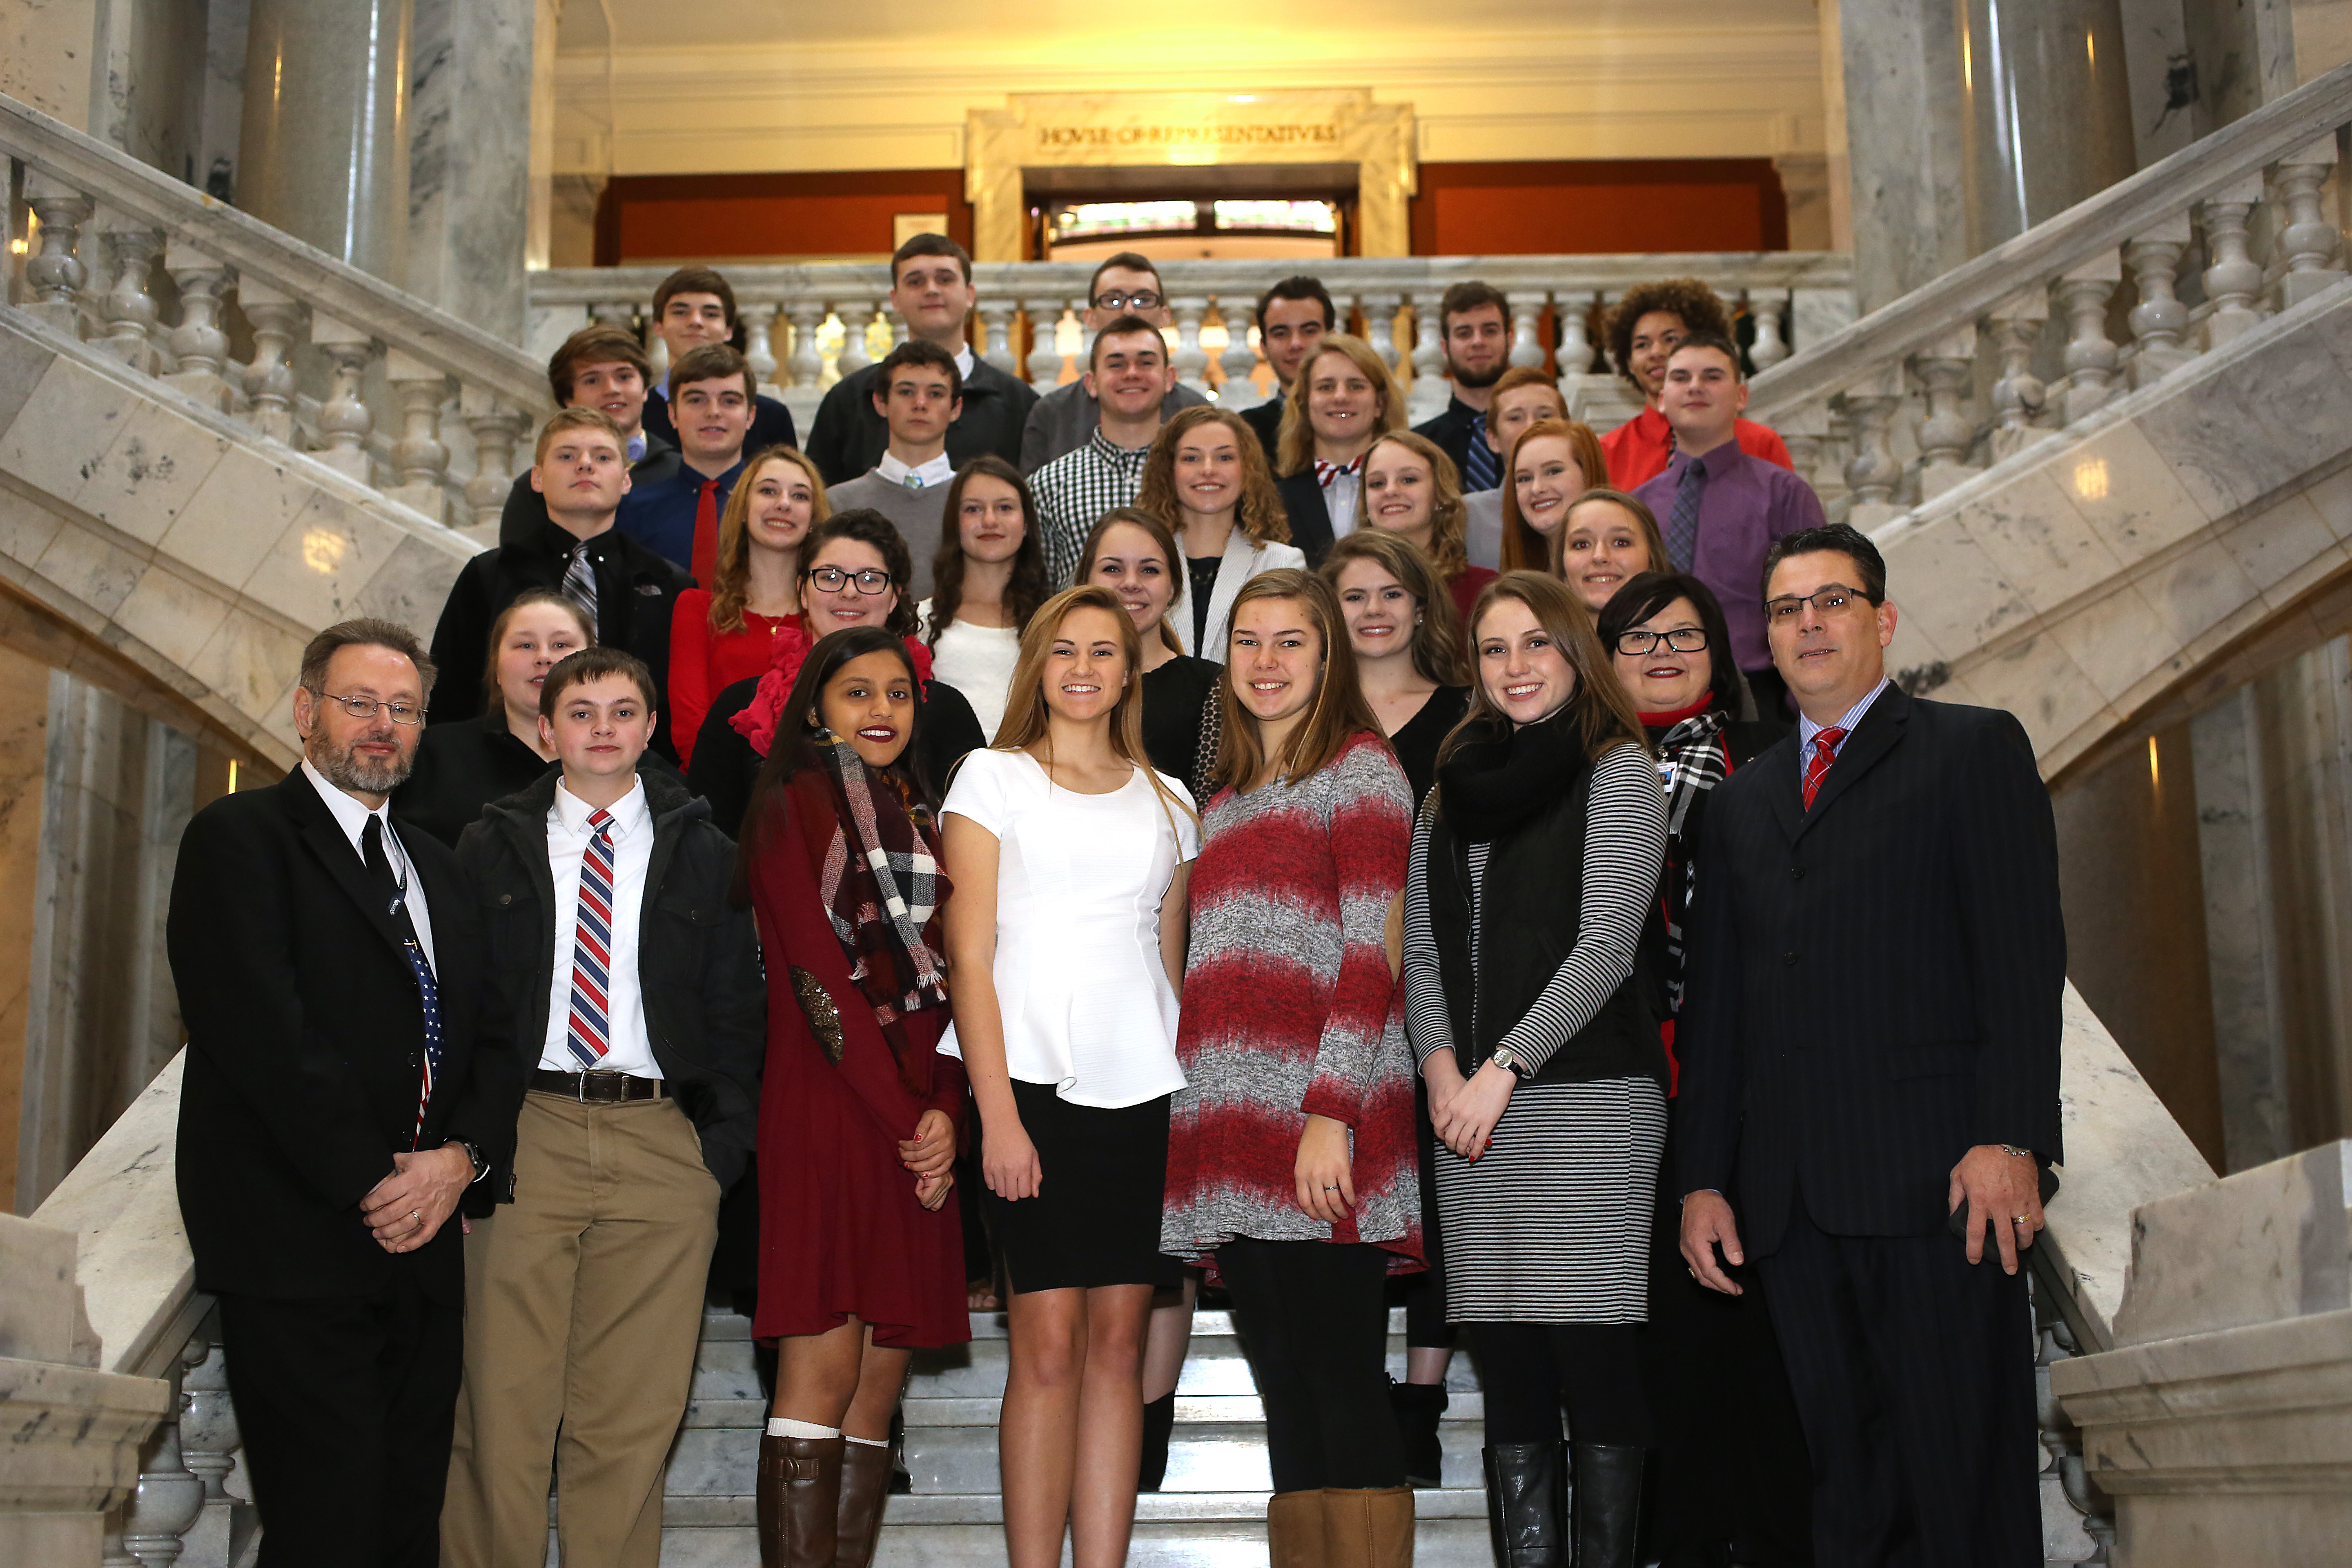 Representative Ken Upchurch posed for a photo with the WCHS Teen Republicans